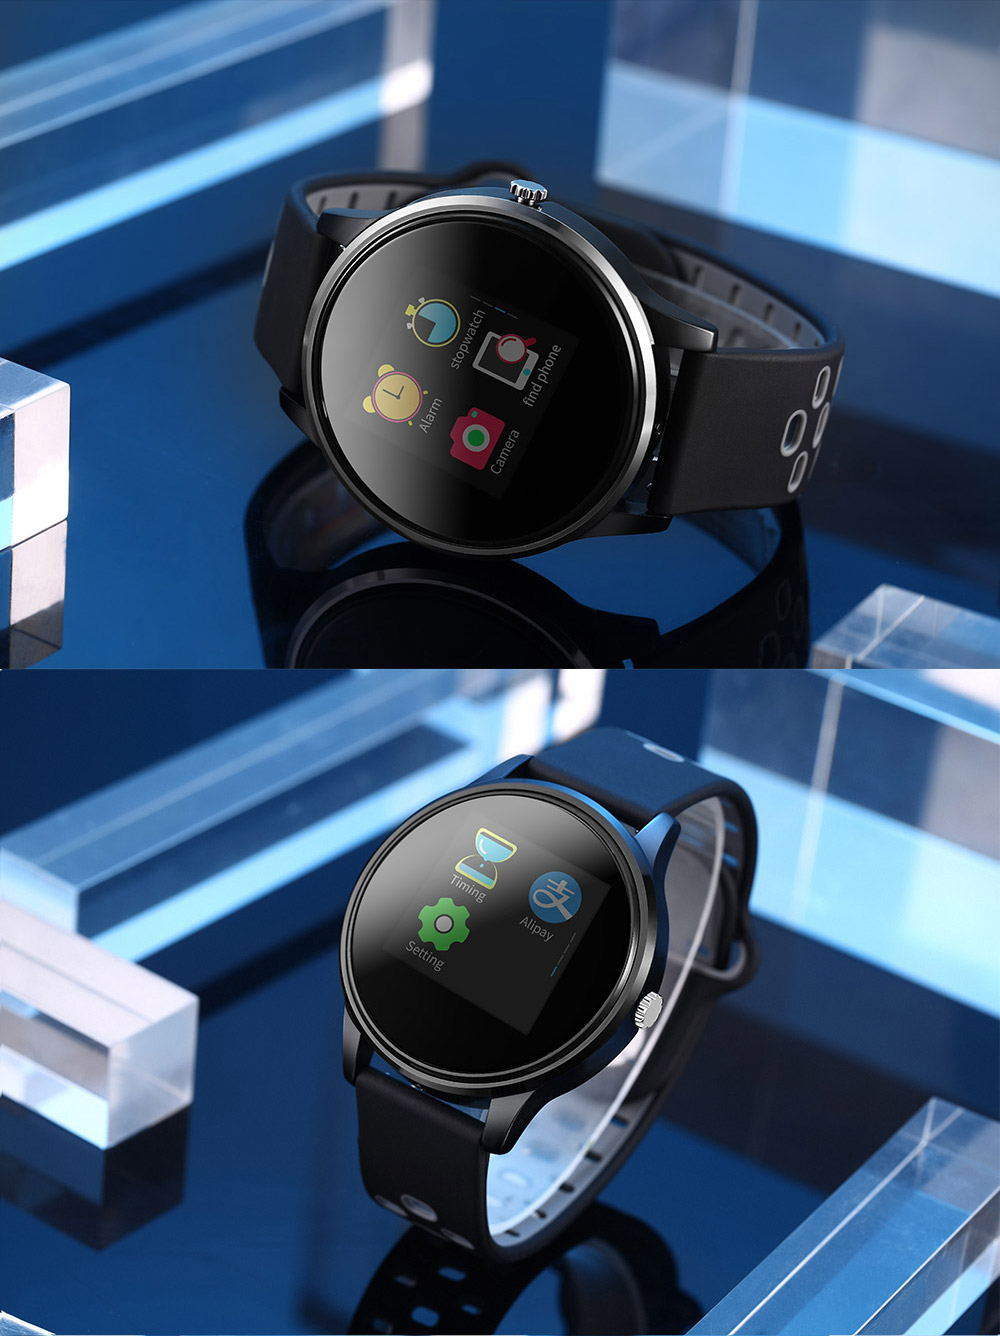 gmove jsw168 smartwatch review